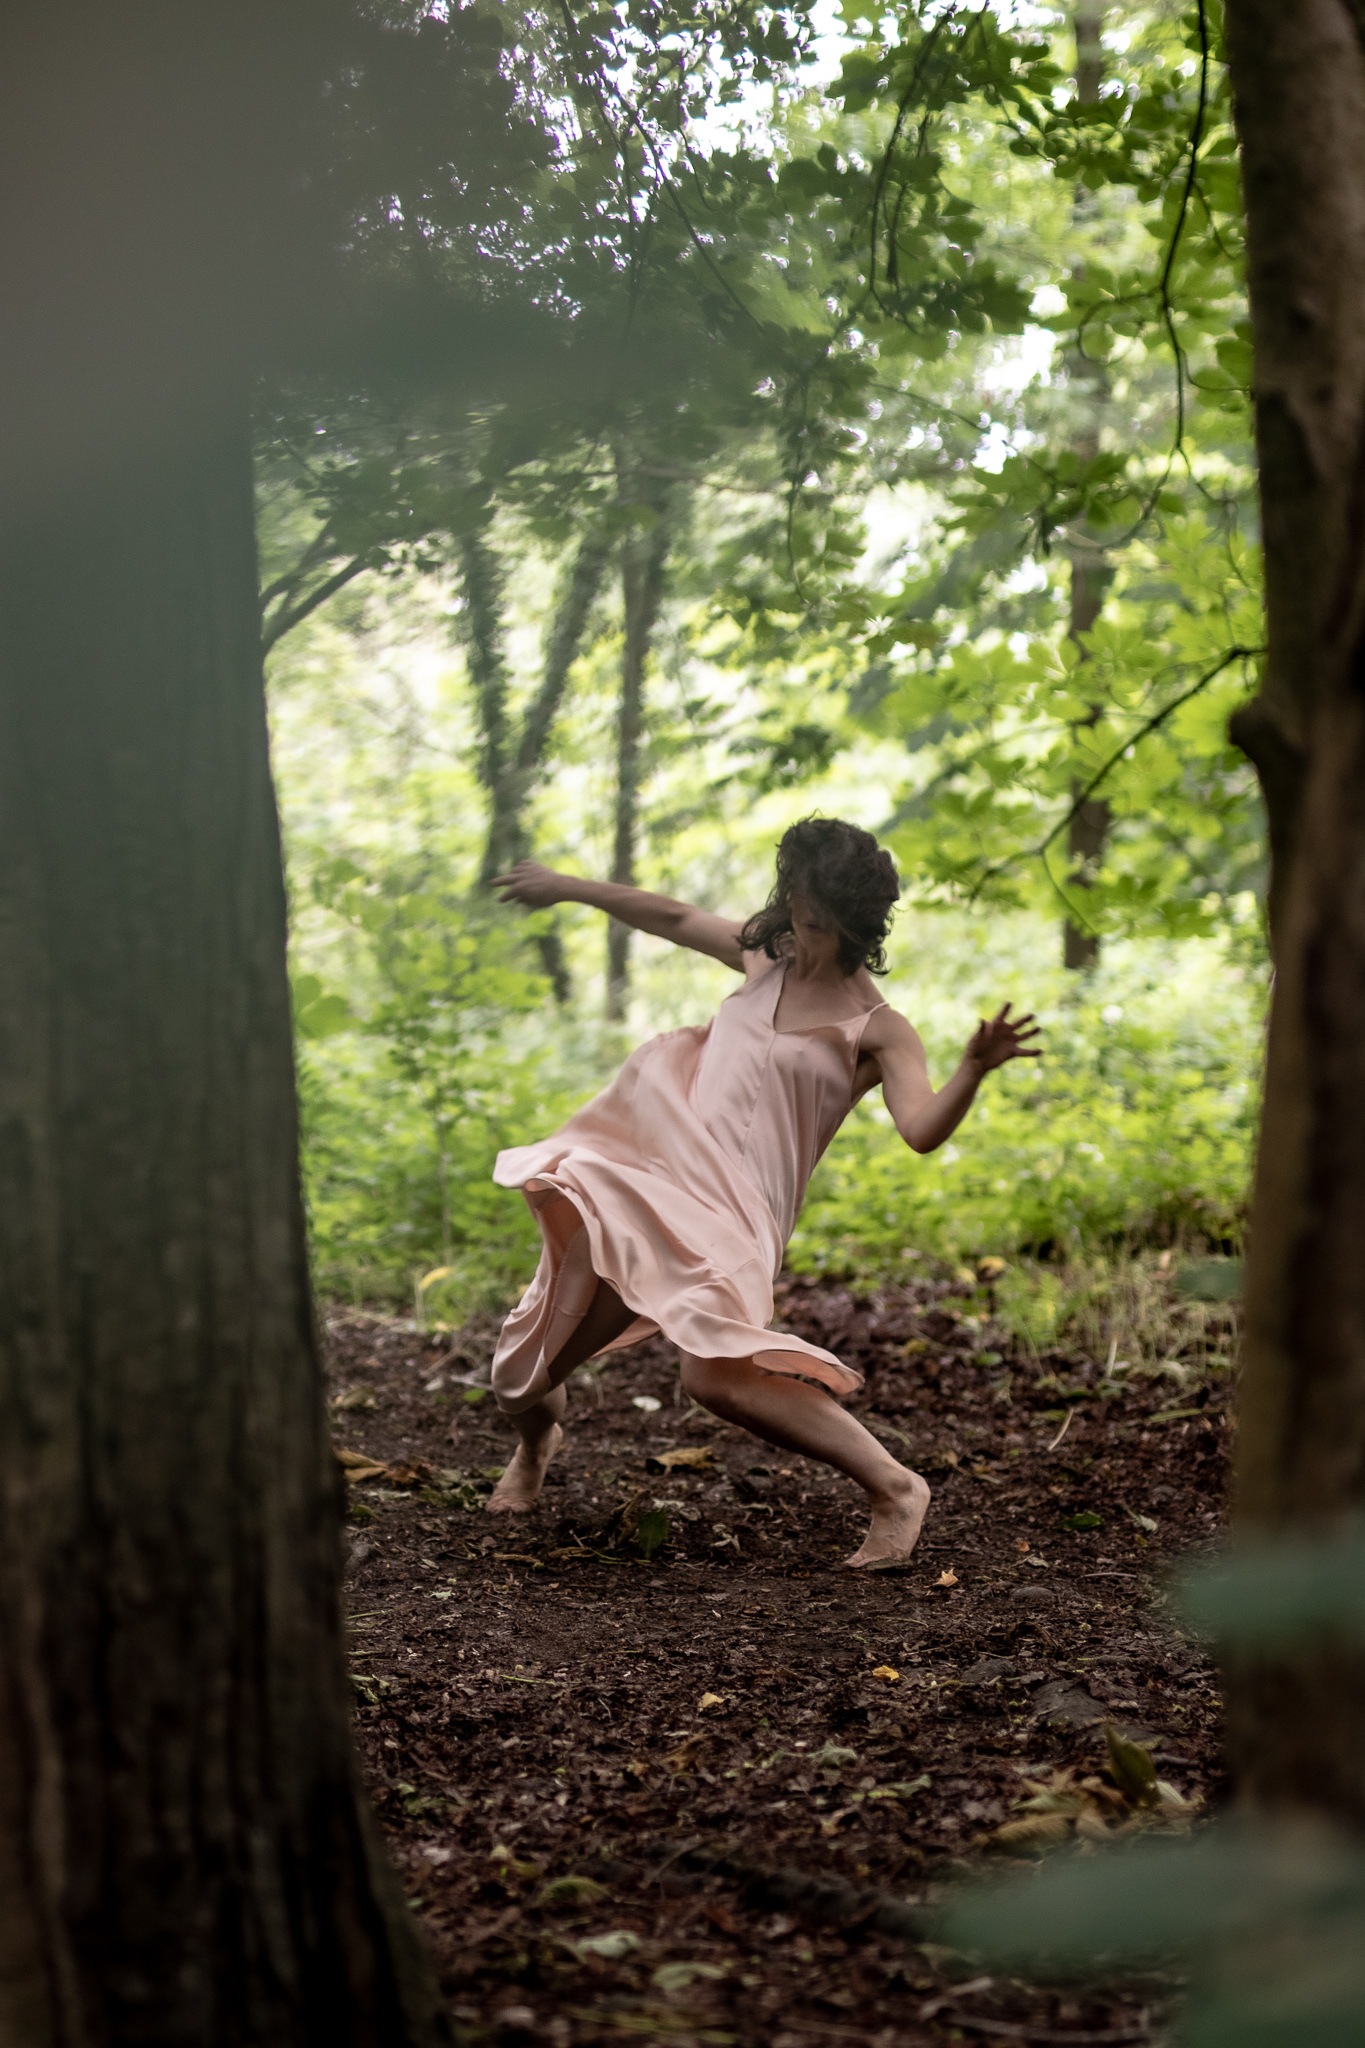 Abstract image of a dancer in the forest